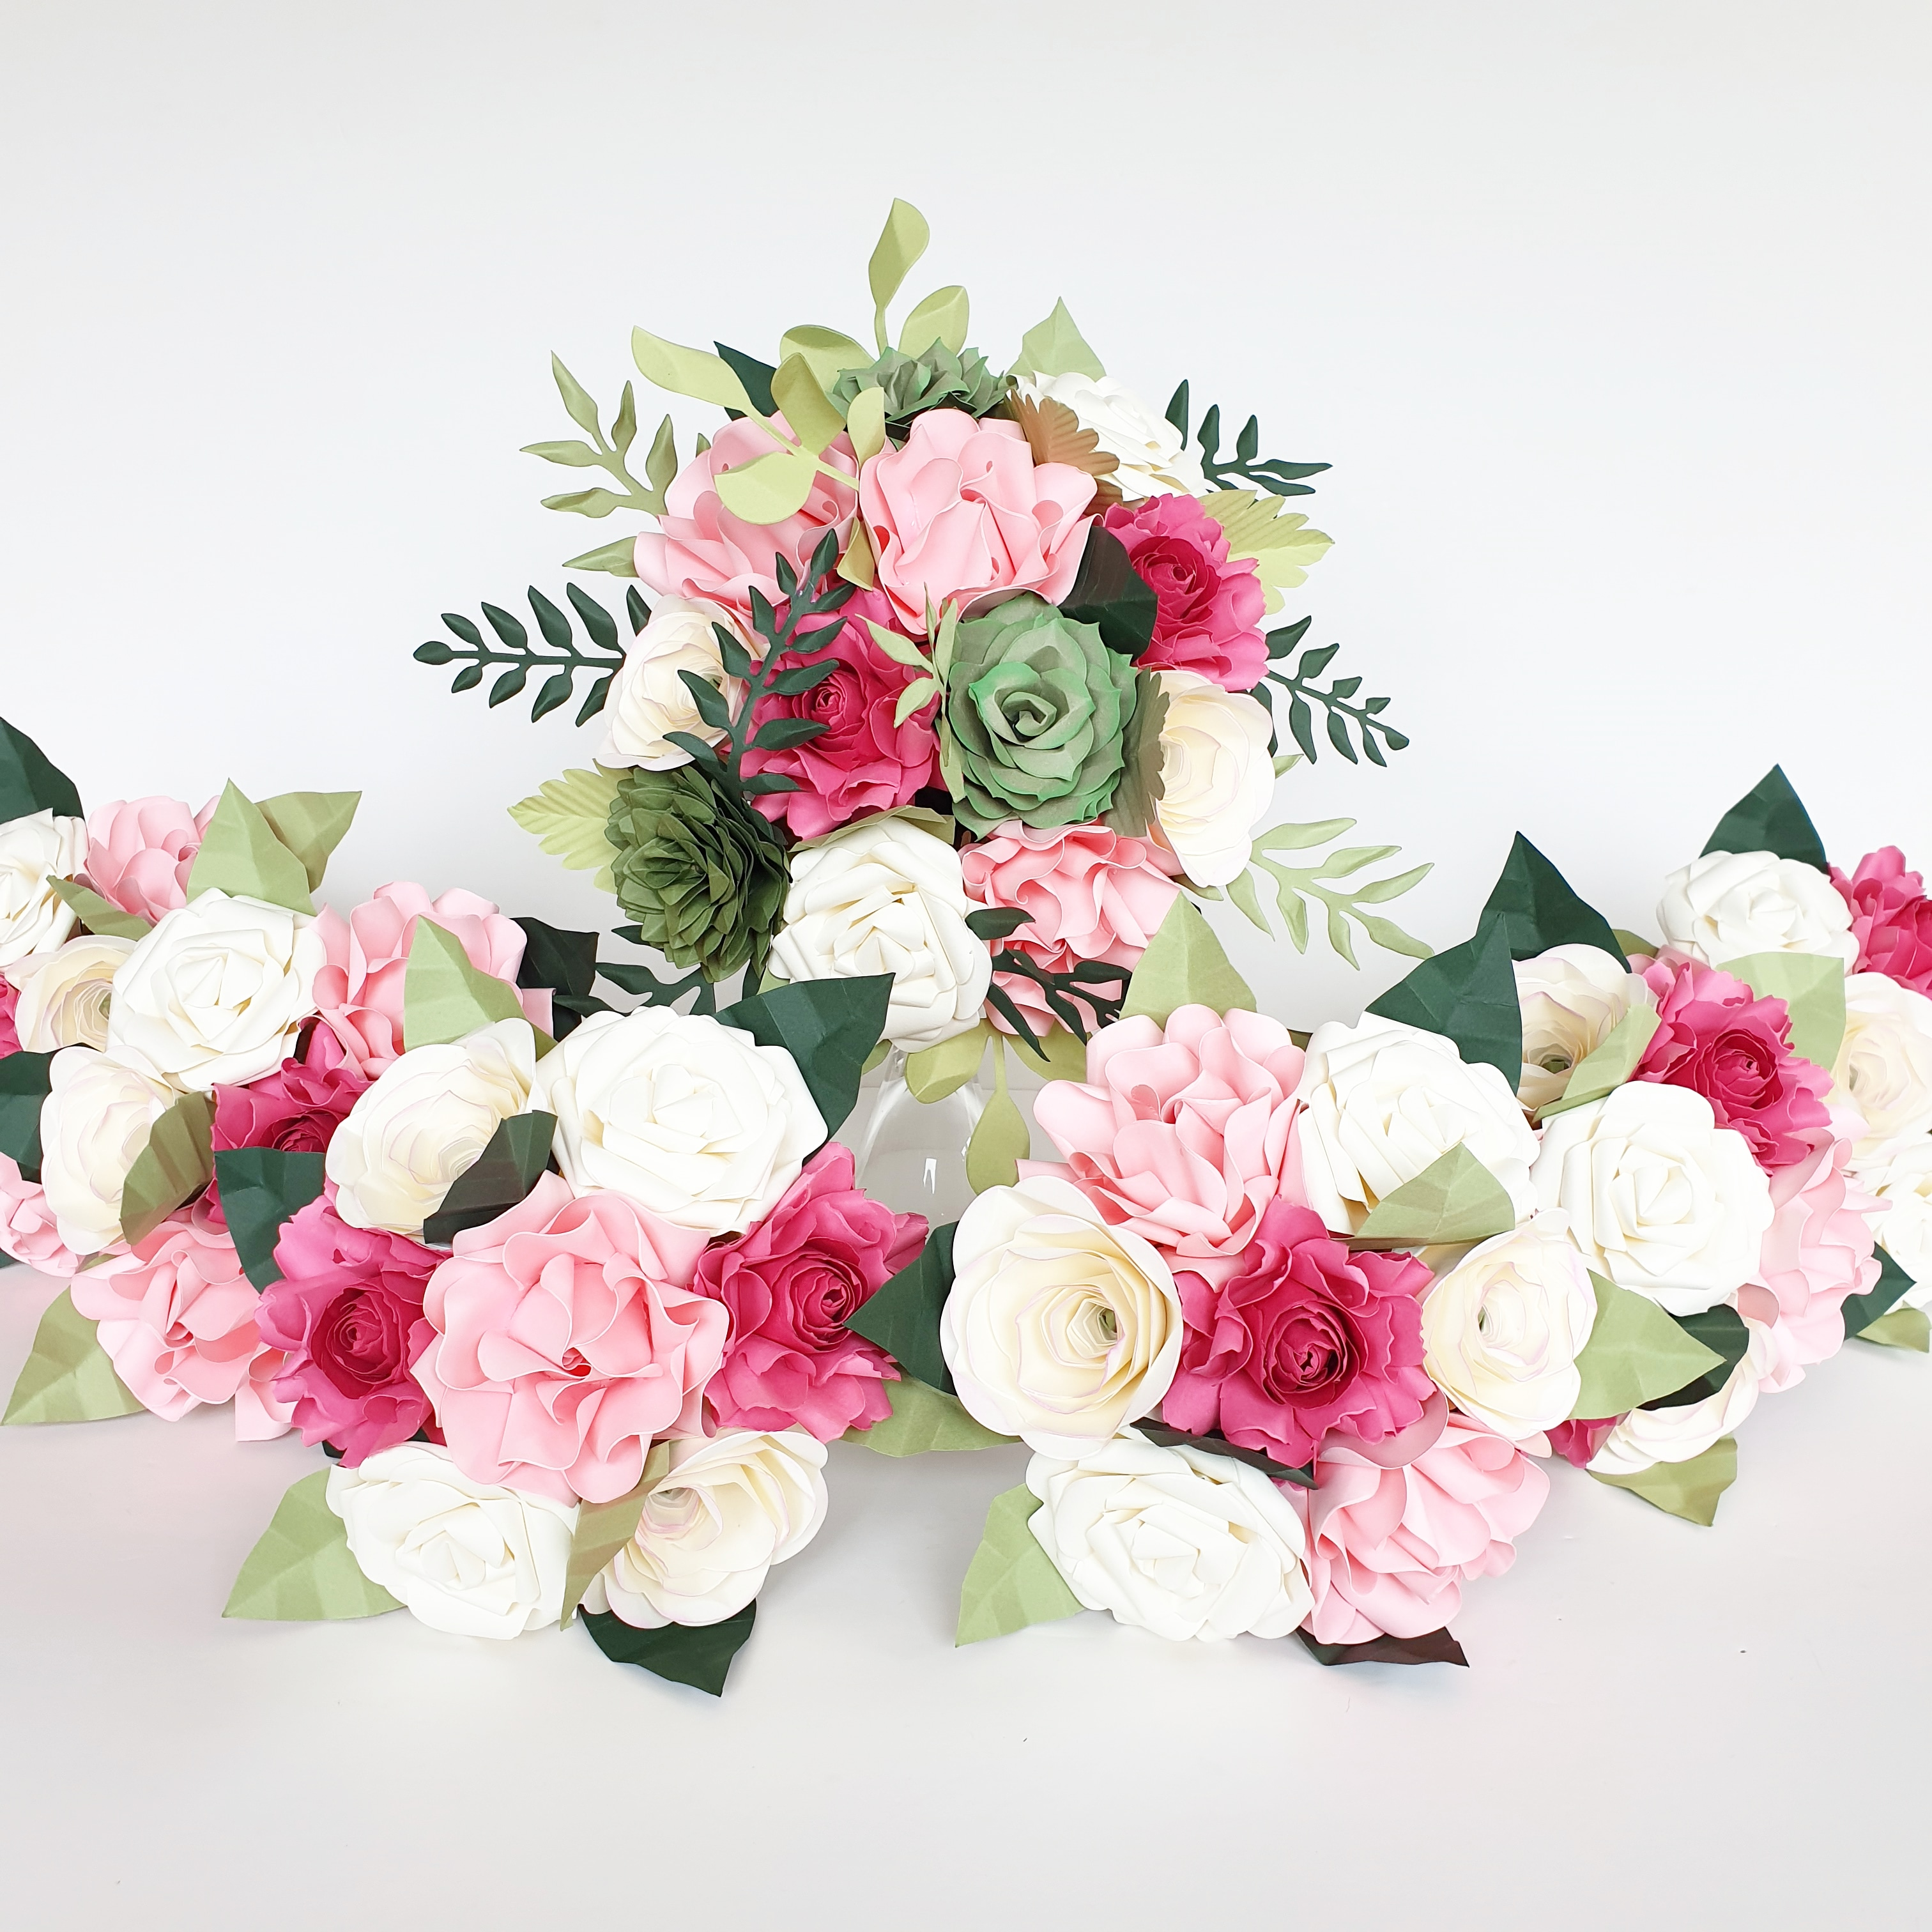 Pink bouquet wedding flowers idea theme